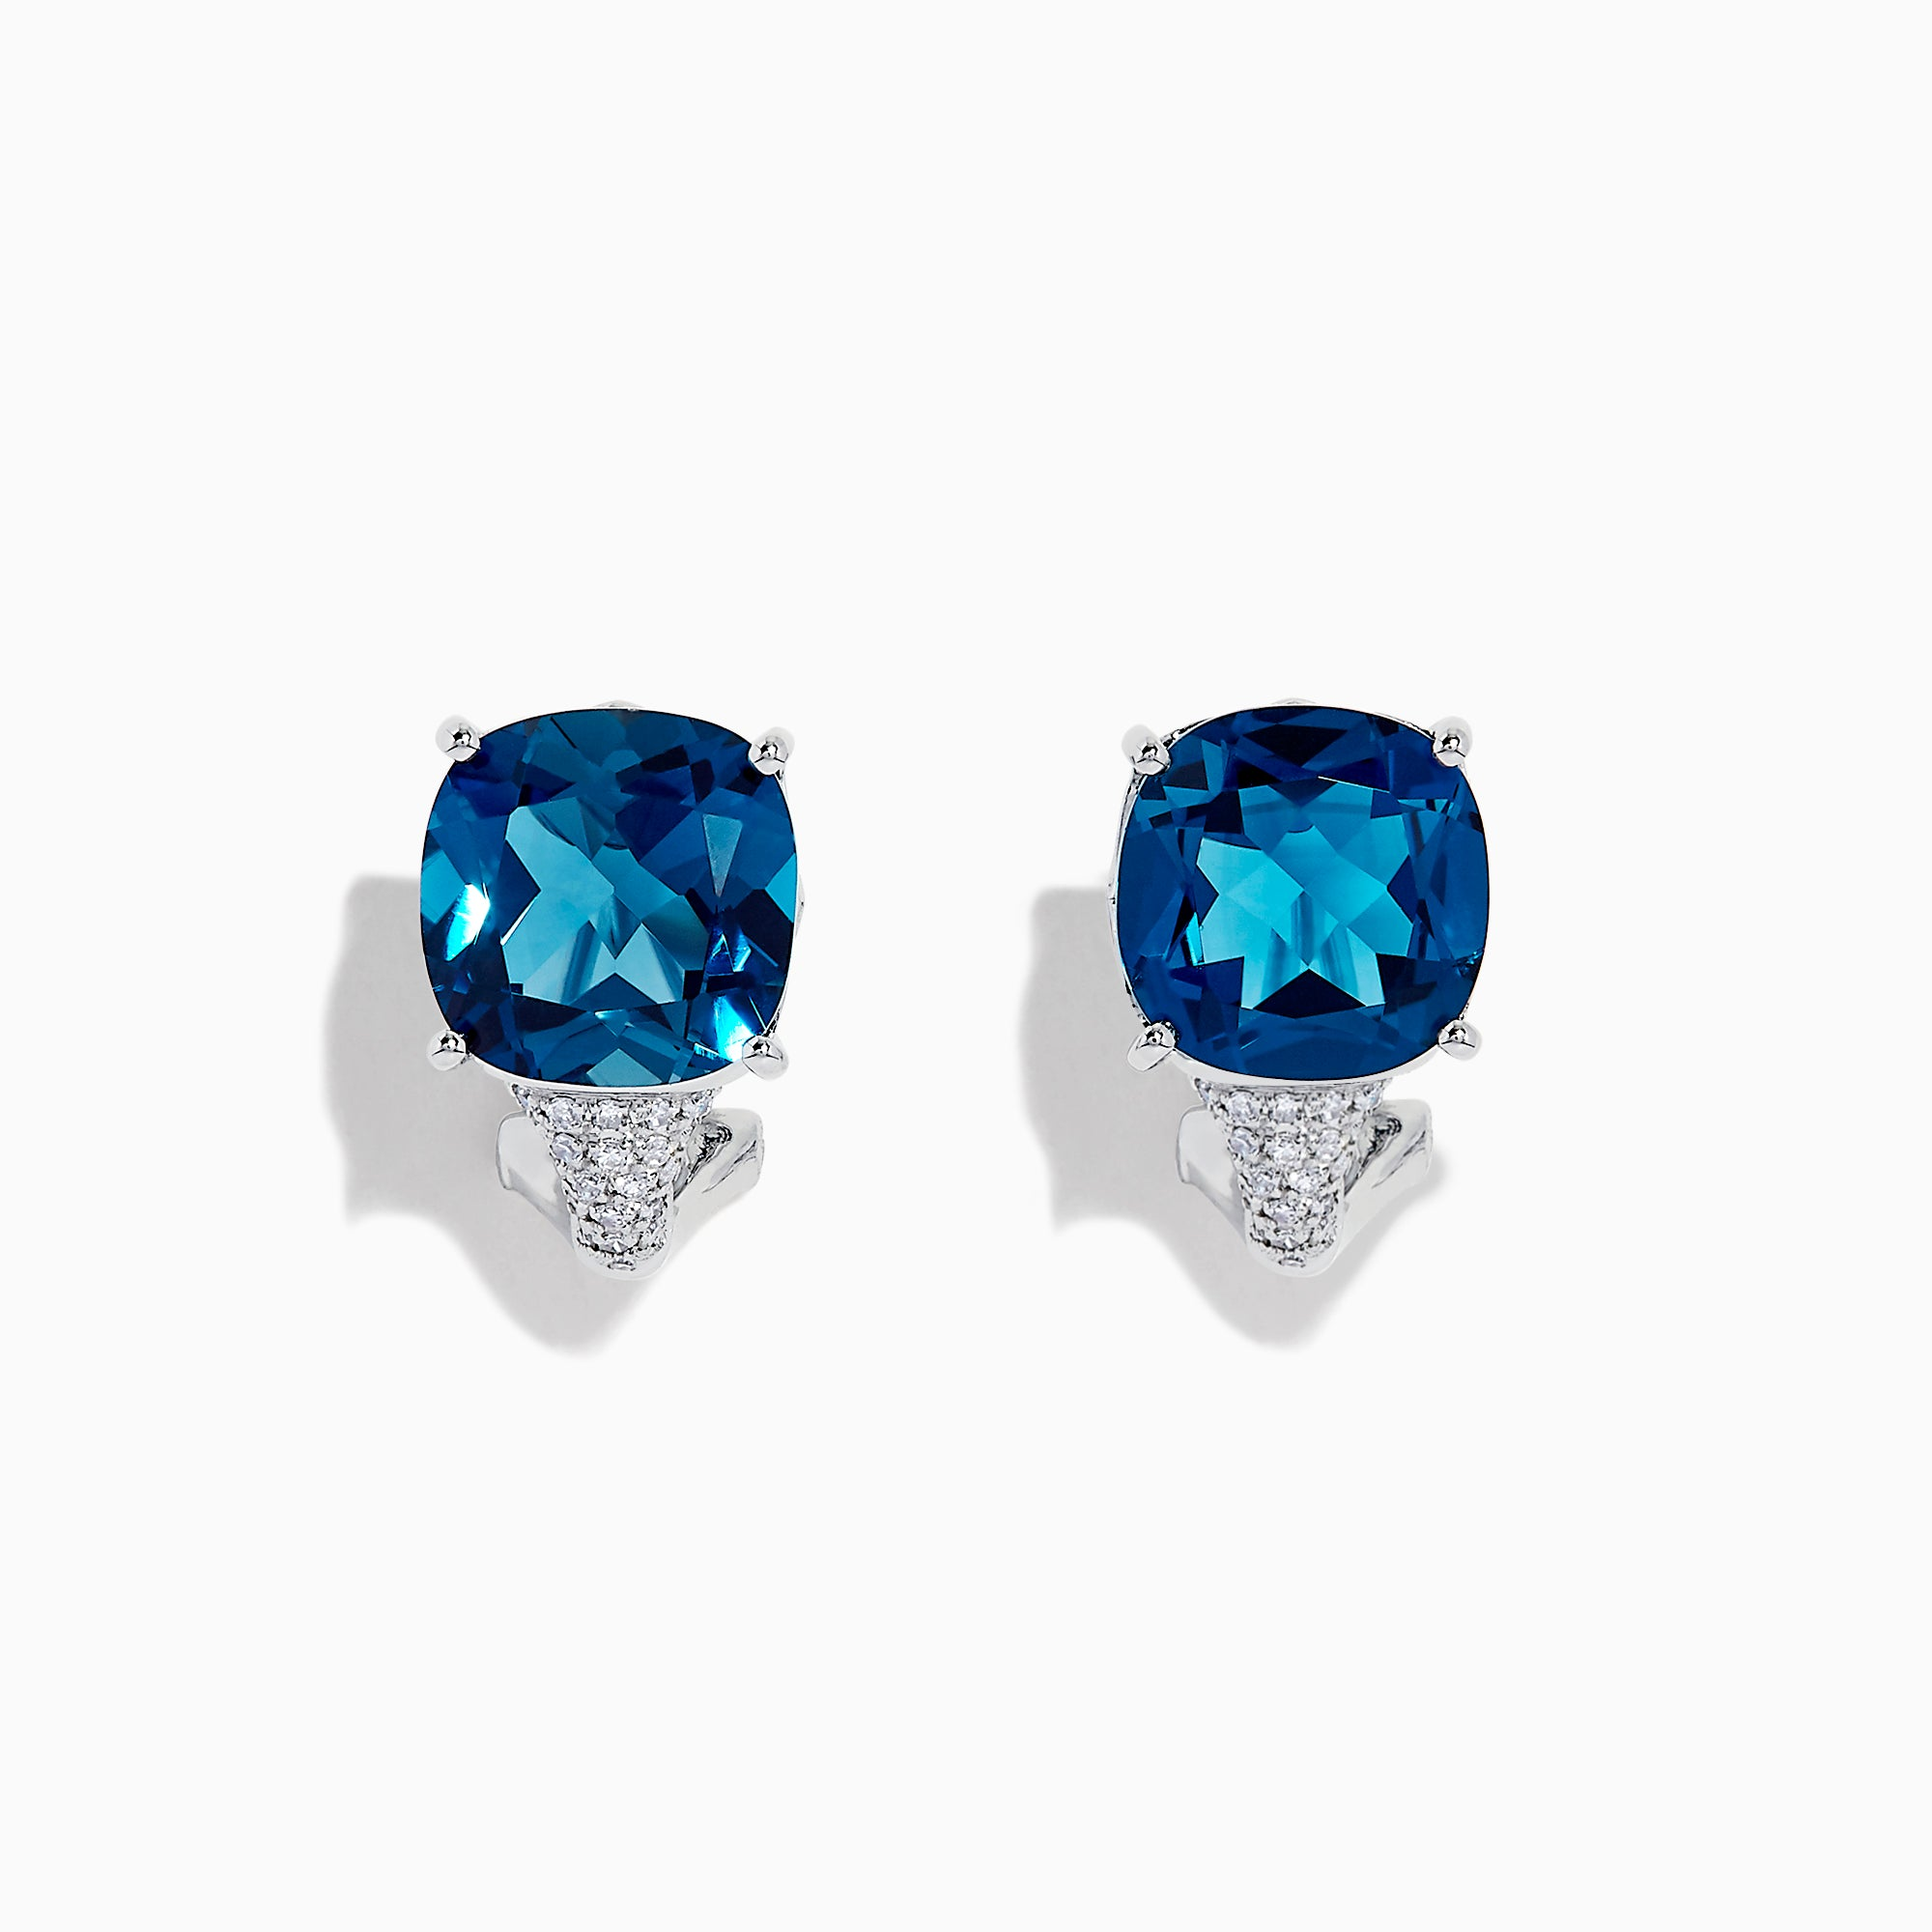 Effy Ocean Bleu 14K Gold London Blue Topaz and Diamond Earrings, 10.79 TCW